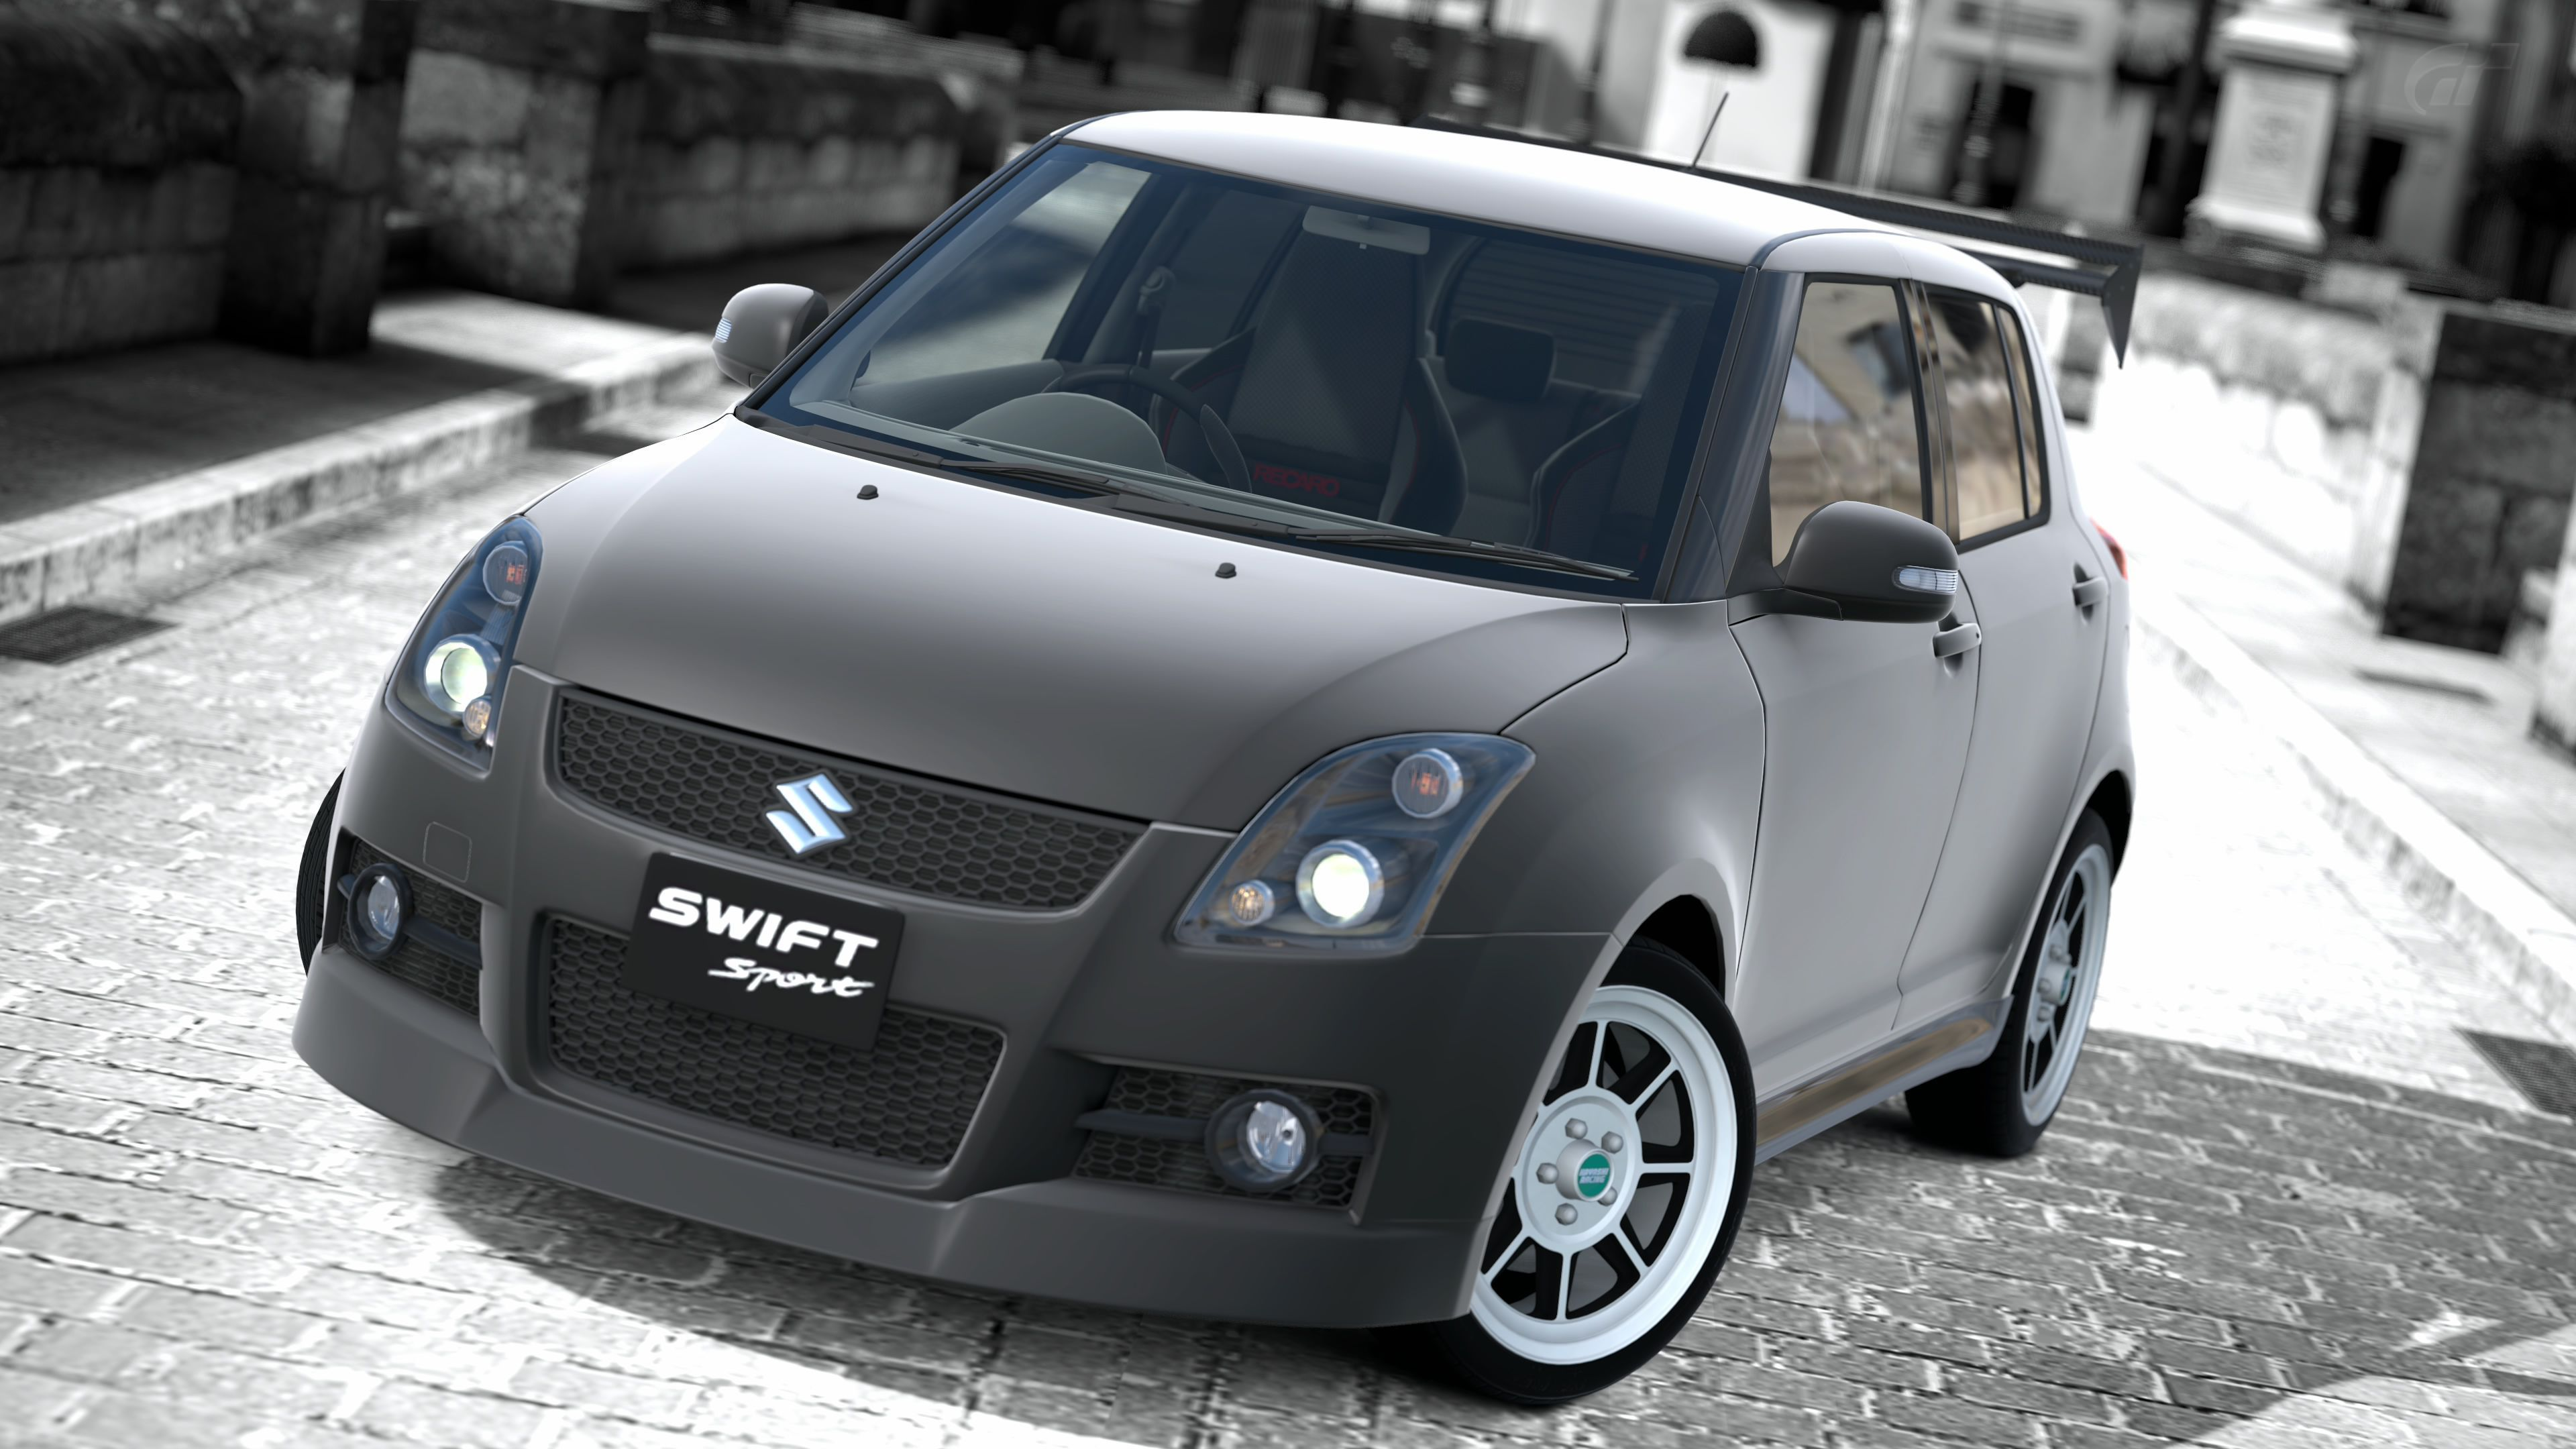 Suzuki Swift Sport Wallpapers And Backgrounds 3840x2160